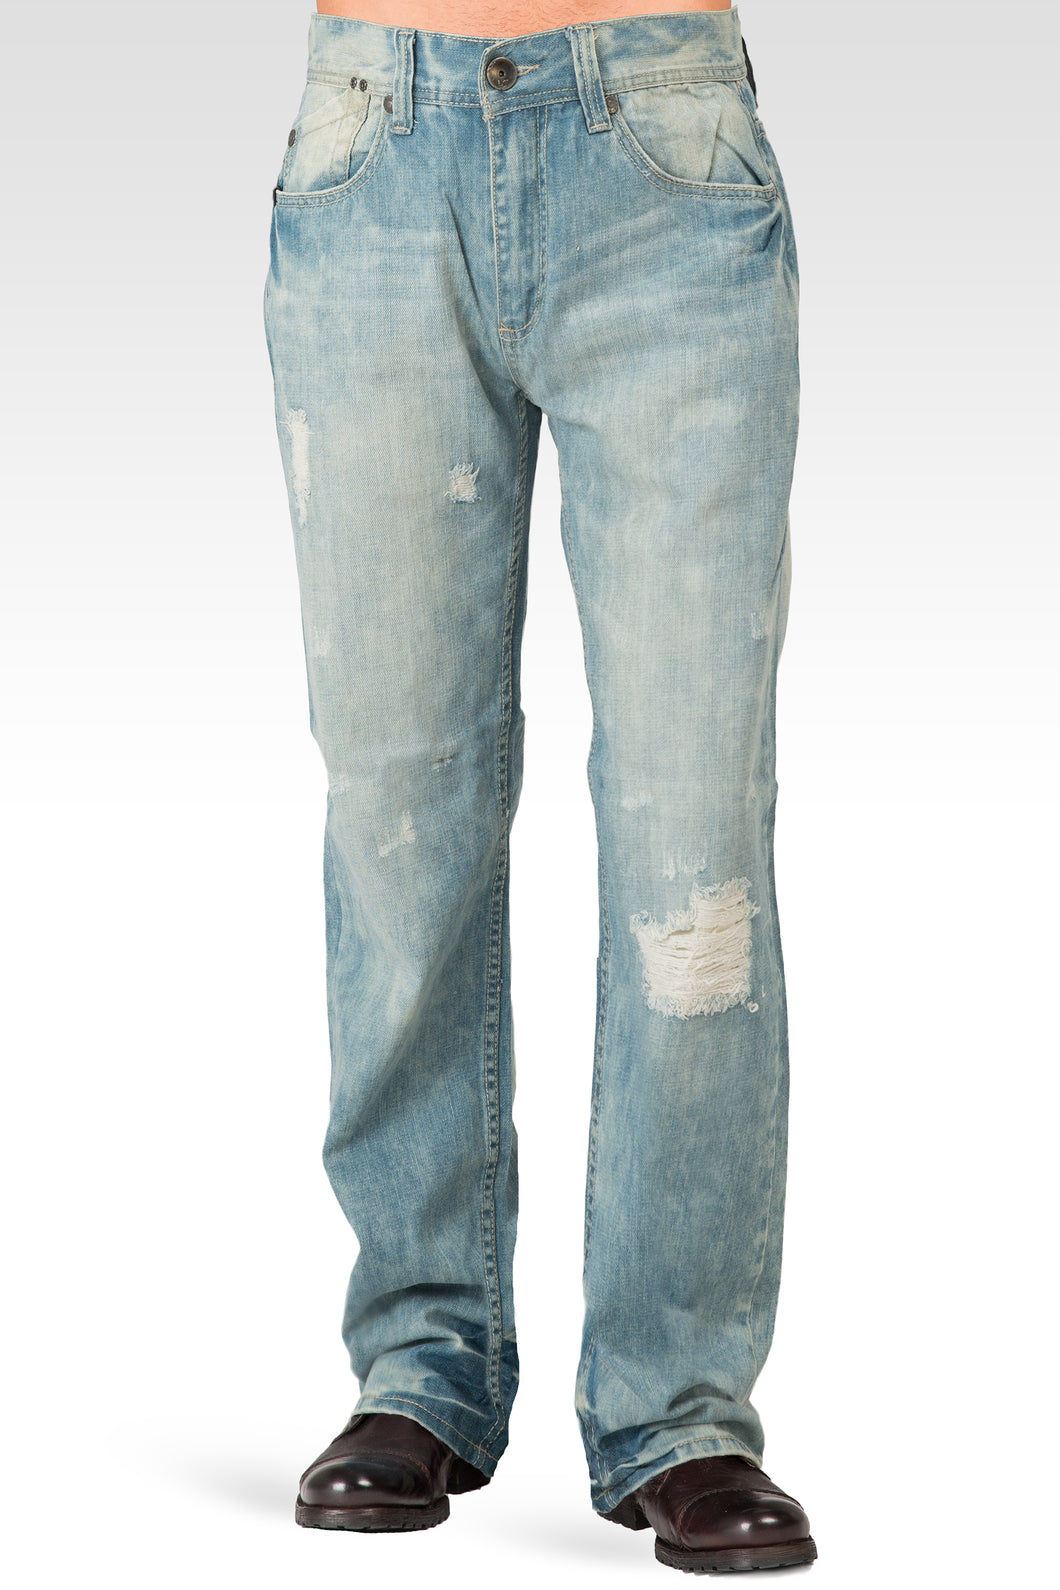 Midrise Relaxed Bootcut Light Blue Whiskering Denim Jeans